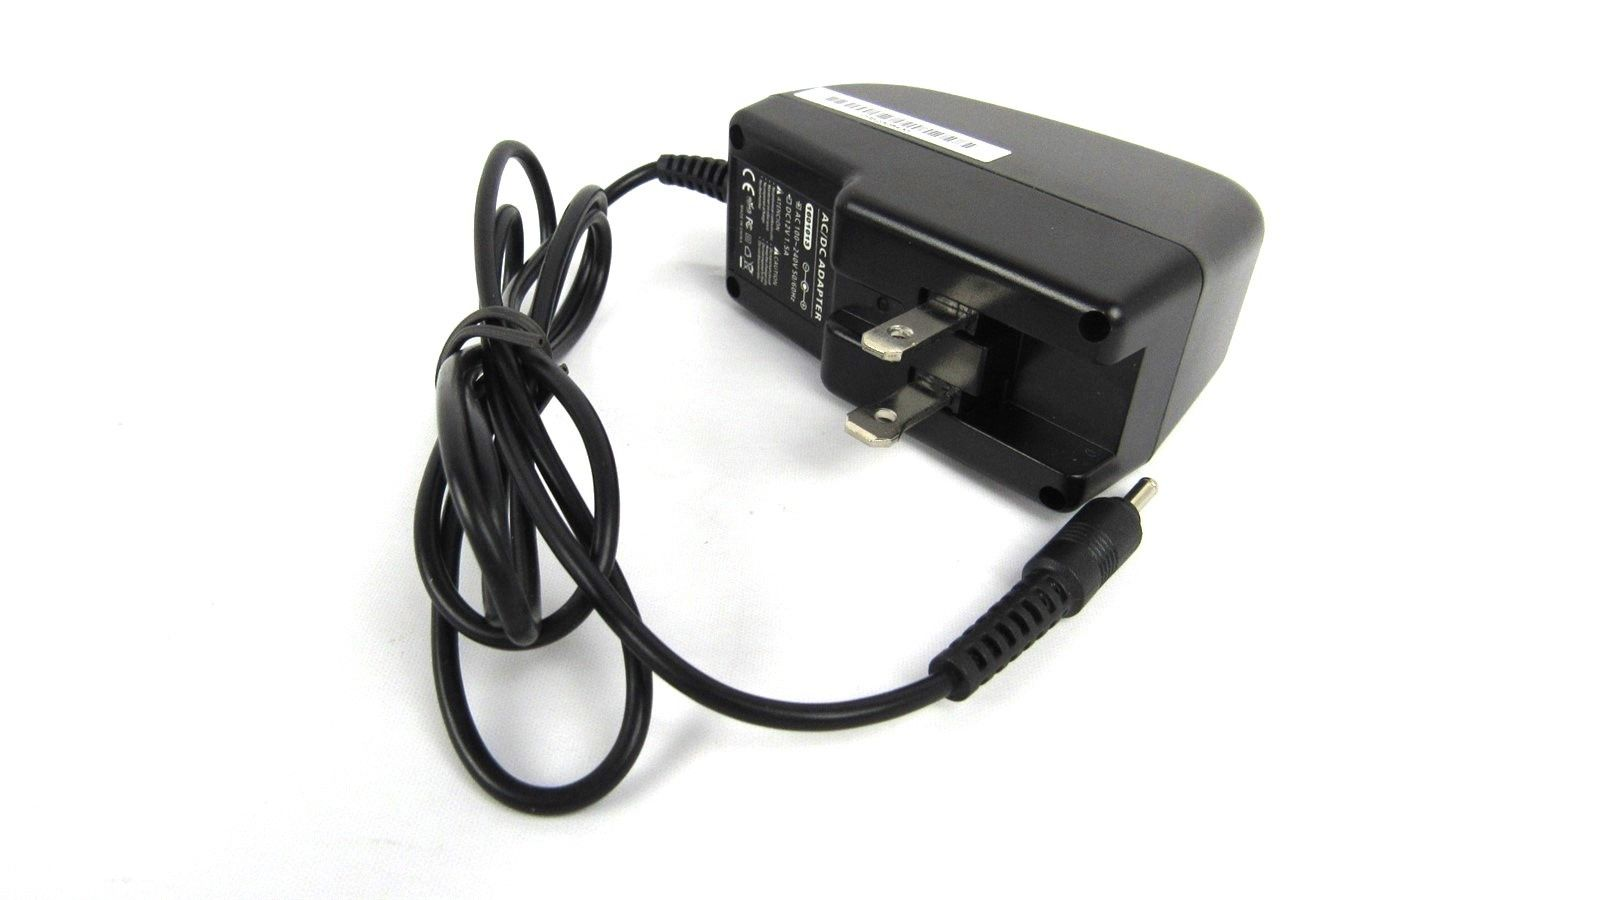 Generic AC Adapter for Acer Switching Power Supply 12V 1.5A Black AP.0180P.003